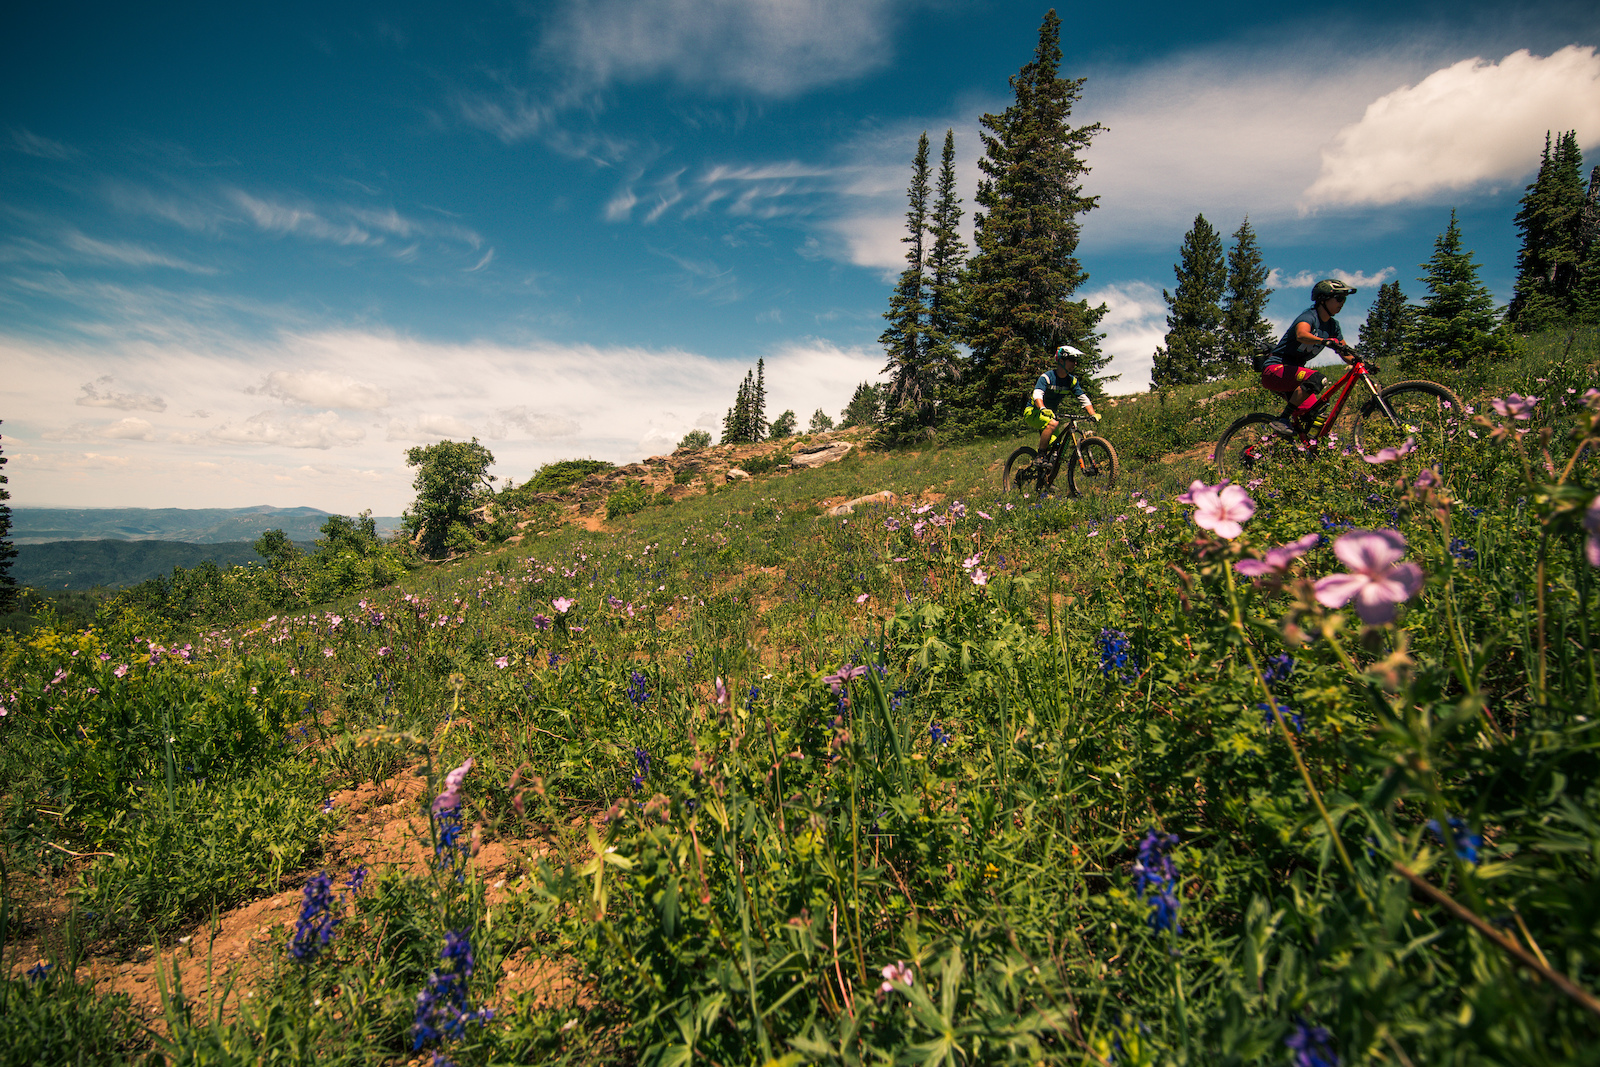 Fast singletrack was nothing short of common on Upper Bear Creek. I don t know if I was going crazy but I swear the rest of the trail smelled just like honey. As the wildflowers became more common the riding began to open up and get a lot dustier.